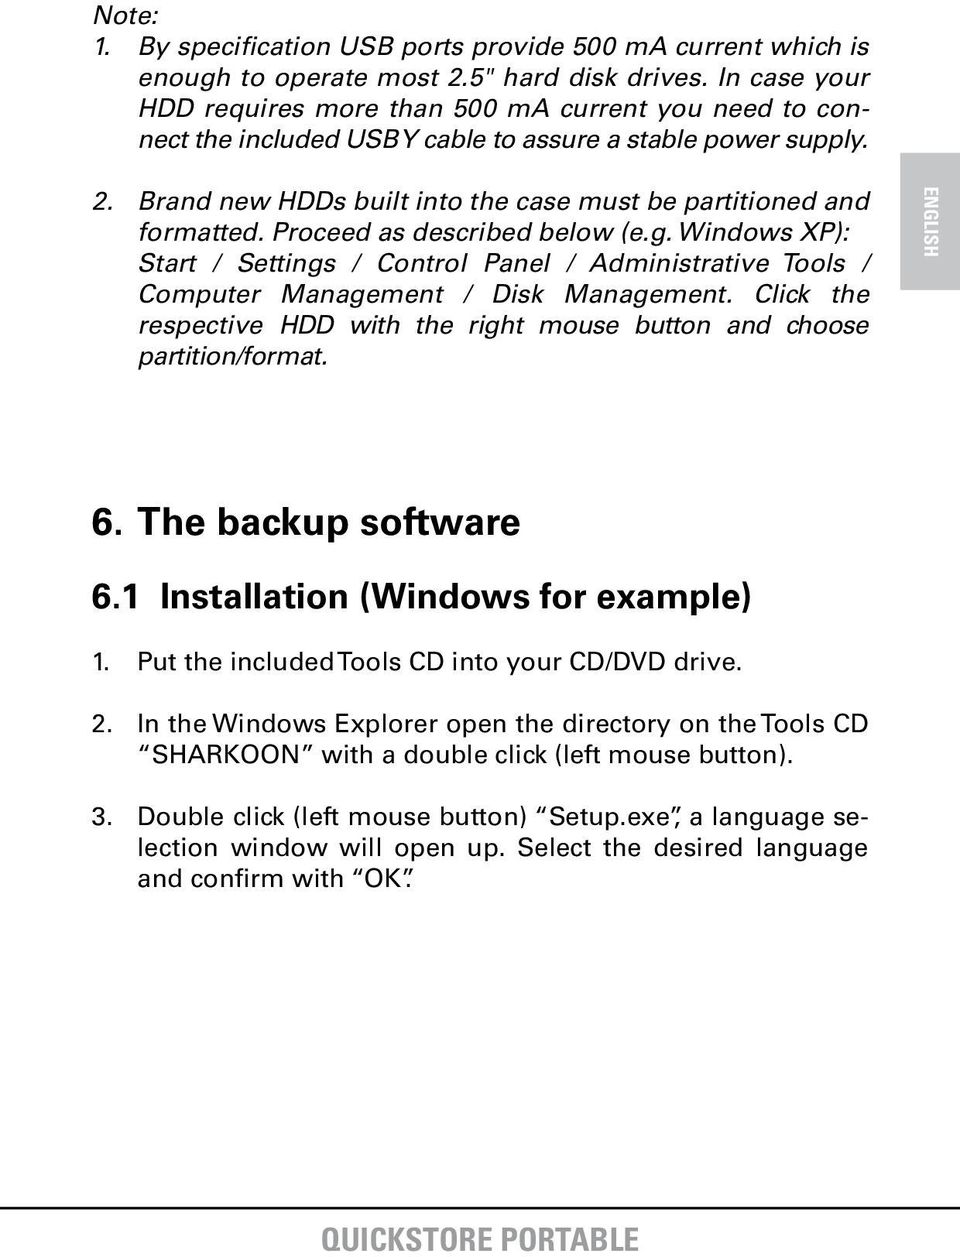 Brand new HDDs built into the case must be partitioned and formatted. Proceed as described below (e.g.